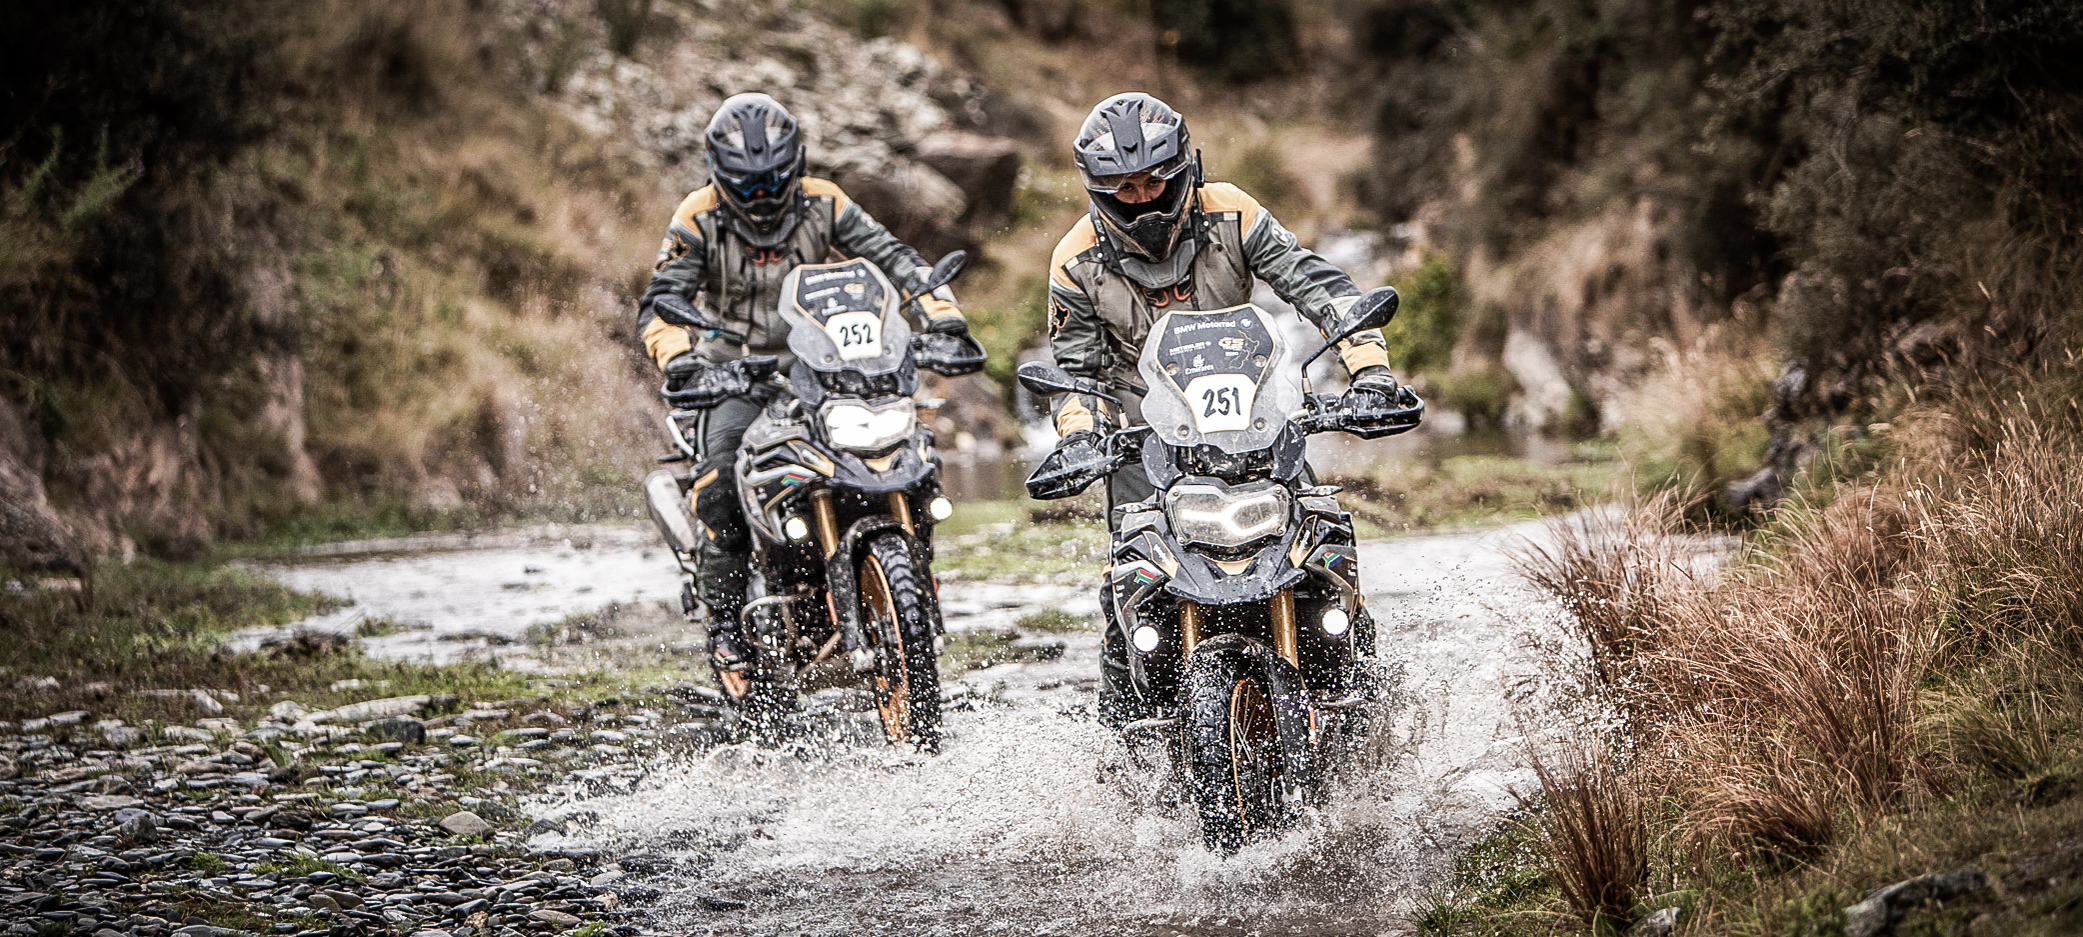 2020 BMW GS TROPHY